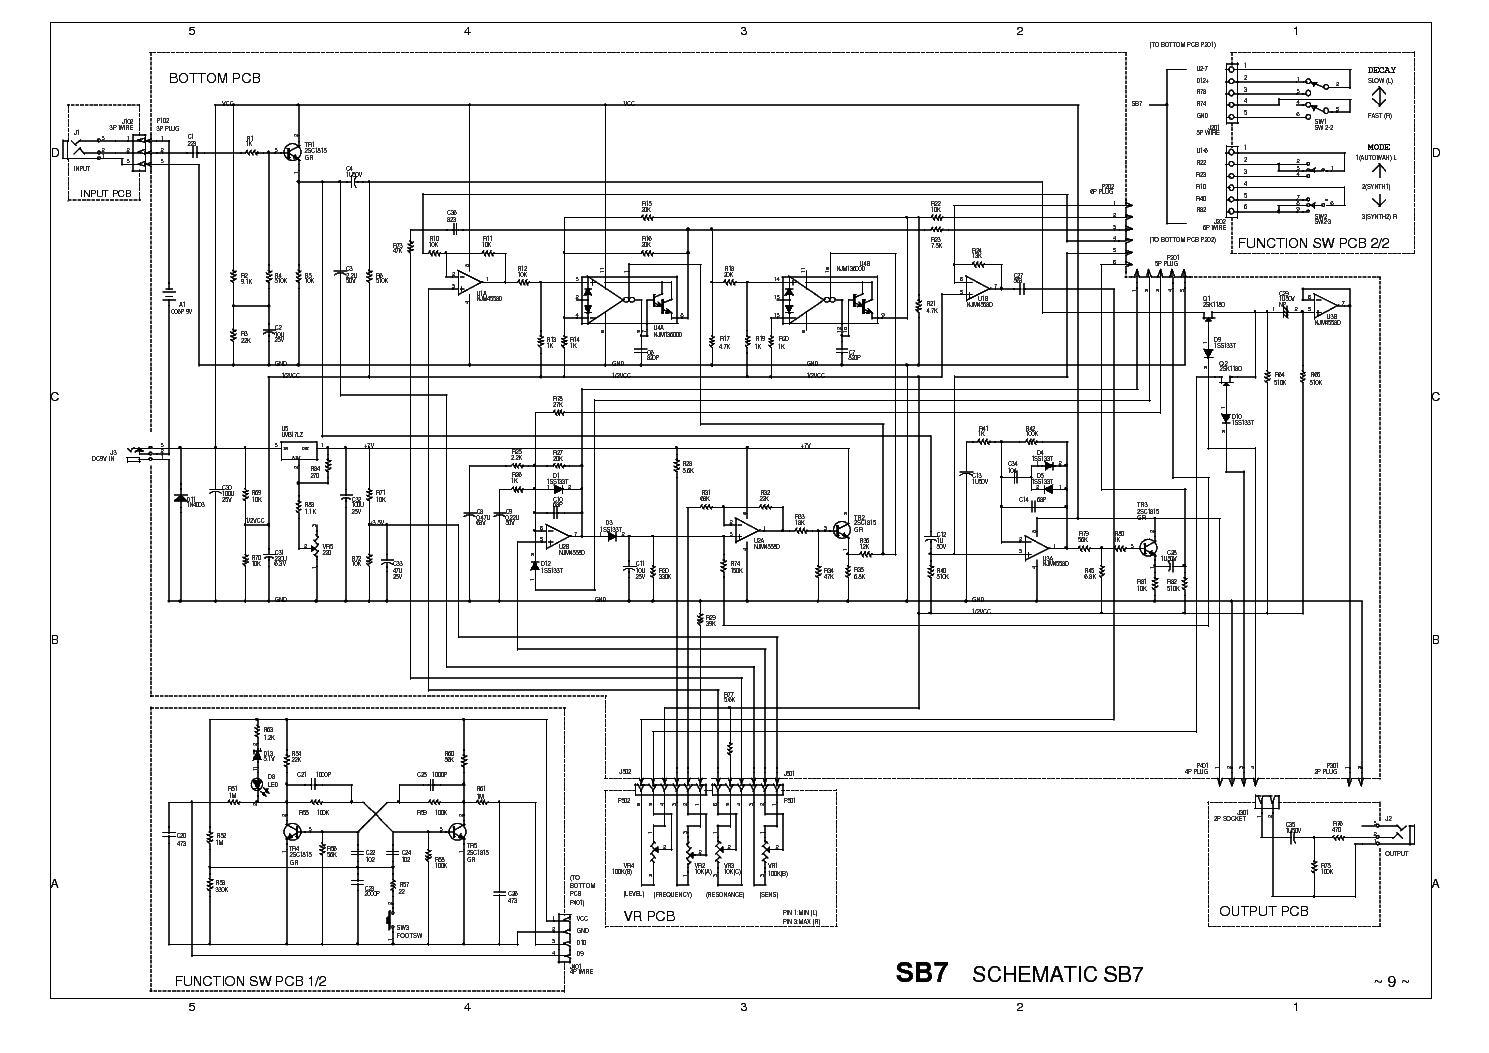 Ibanez Sb7 02 Schematic Service Manual Download